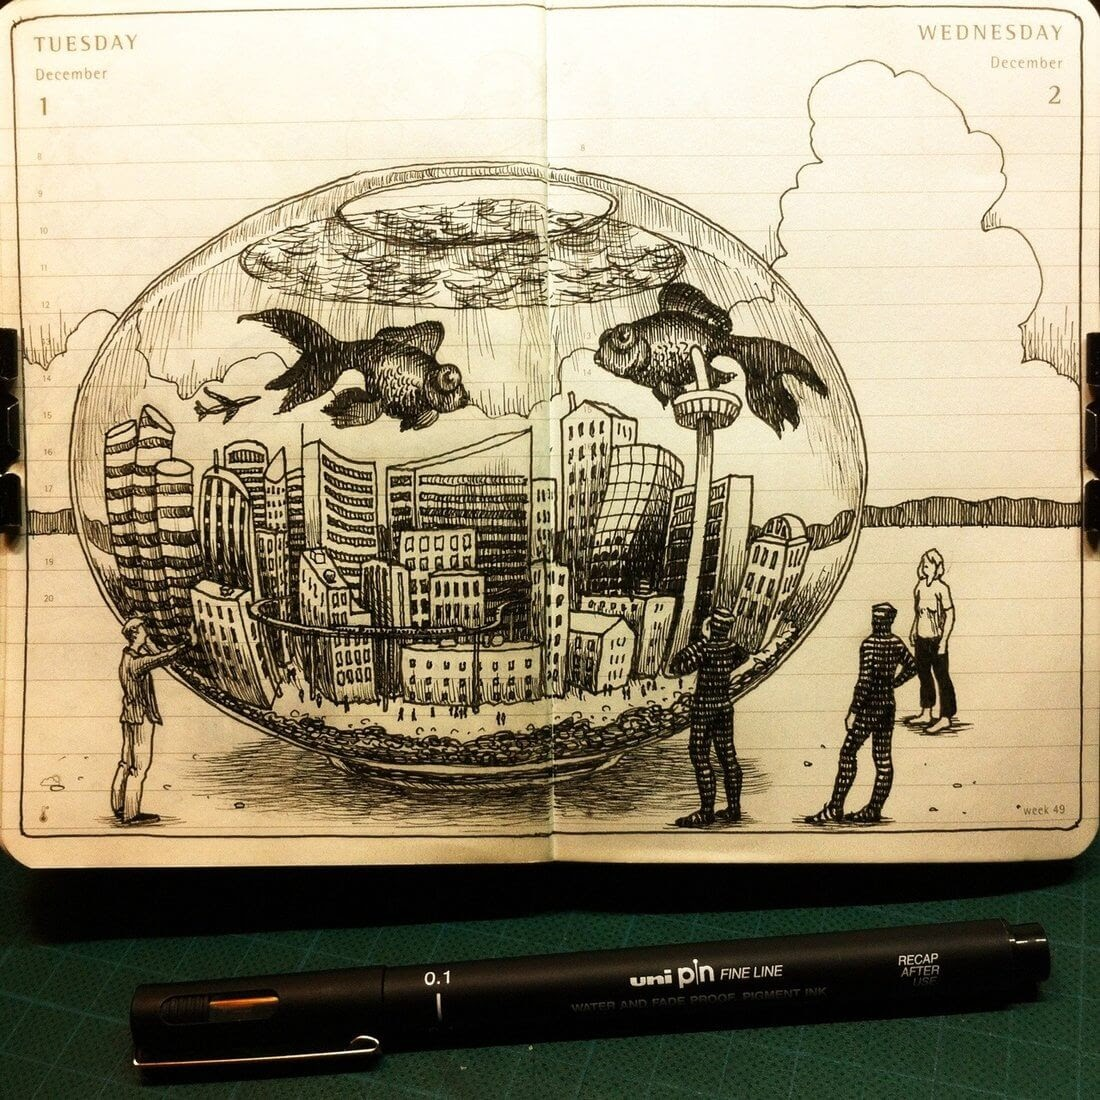 01-Living-in-a-Fish-Bowl-Nina-Johansson-Moleskine-Diary-of-Surreal-Ink-Drawings-www-designstack-co